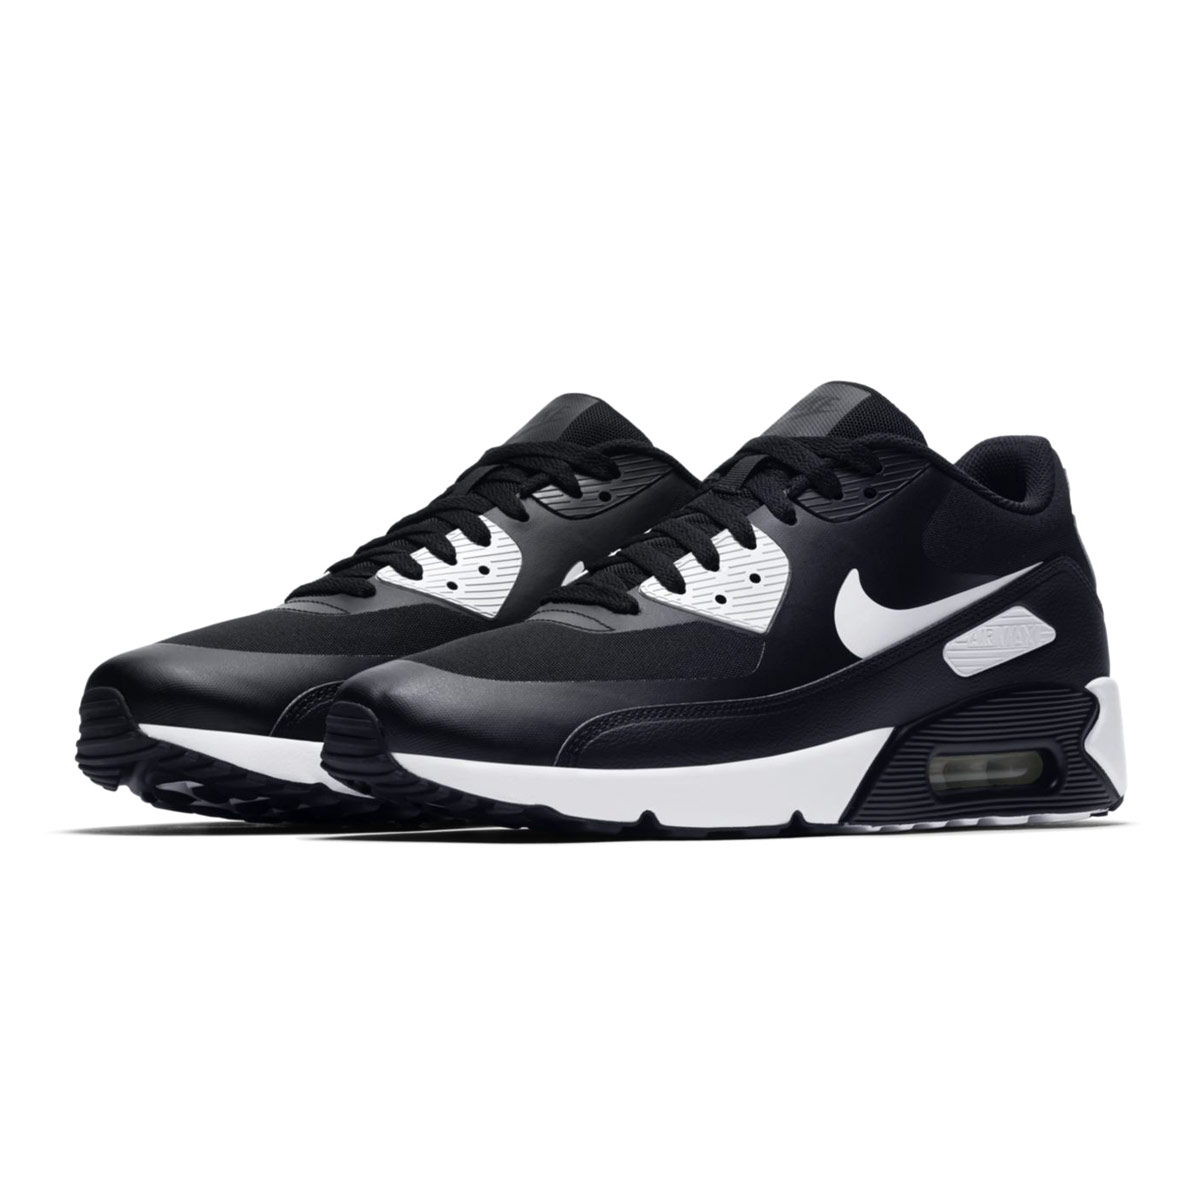 save off e631f 10967 ... wholesale nike air max 90 ultra 2.0 essential kie ney amax 90 ultra 2.0  essential black